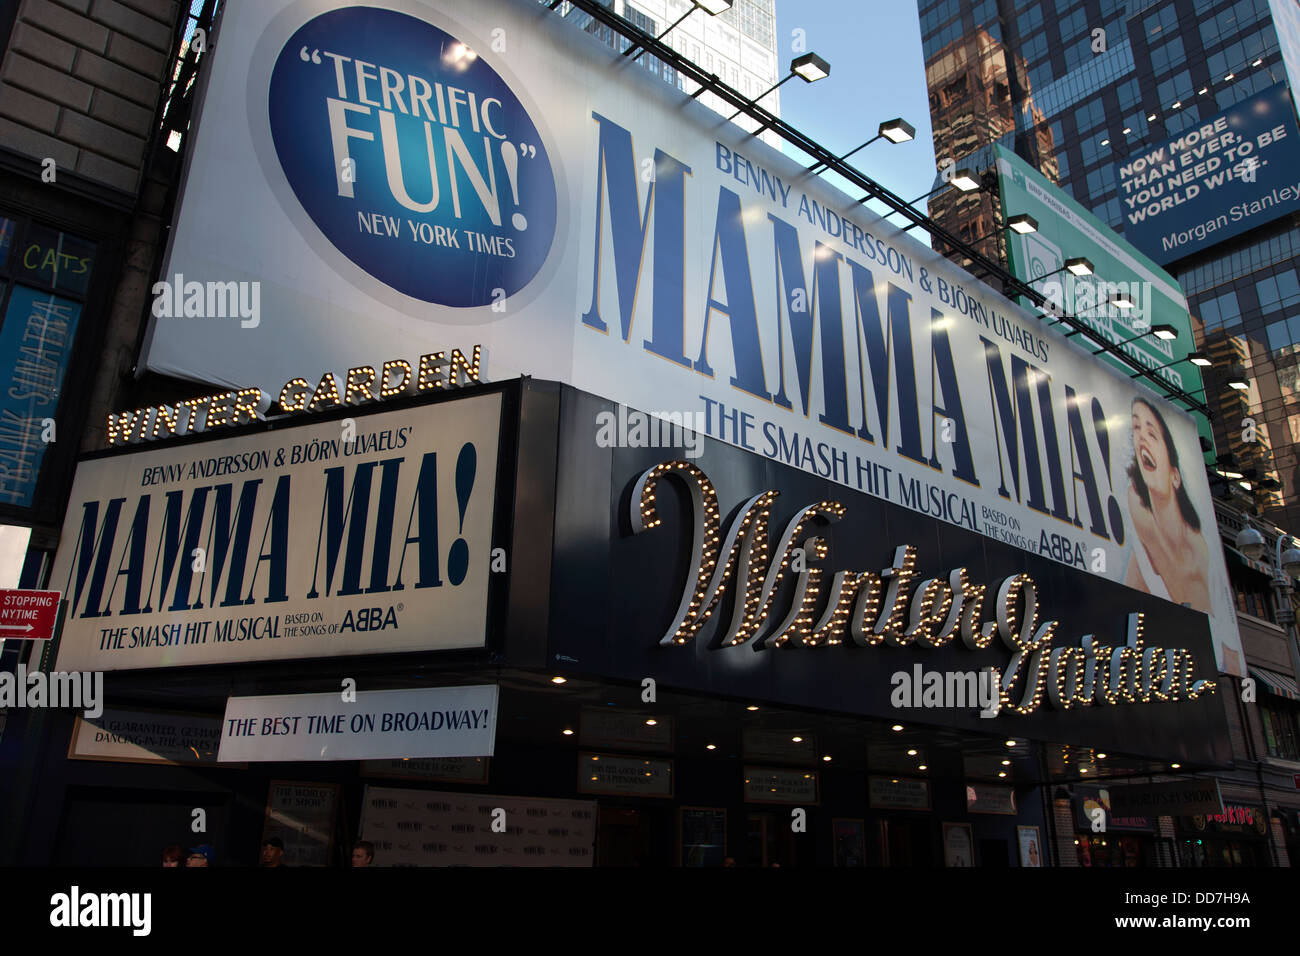 winter garden theater broadway midtown manhattan new york city usa - Winter Garden Theater Nyc